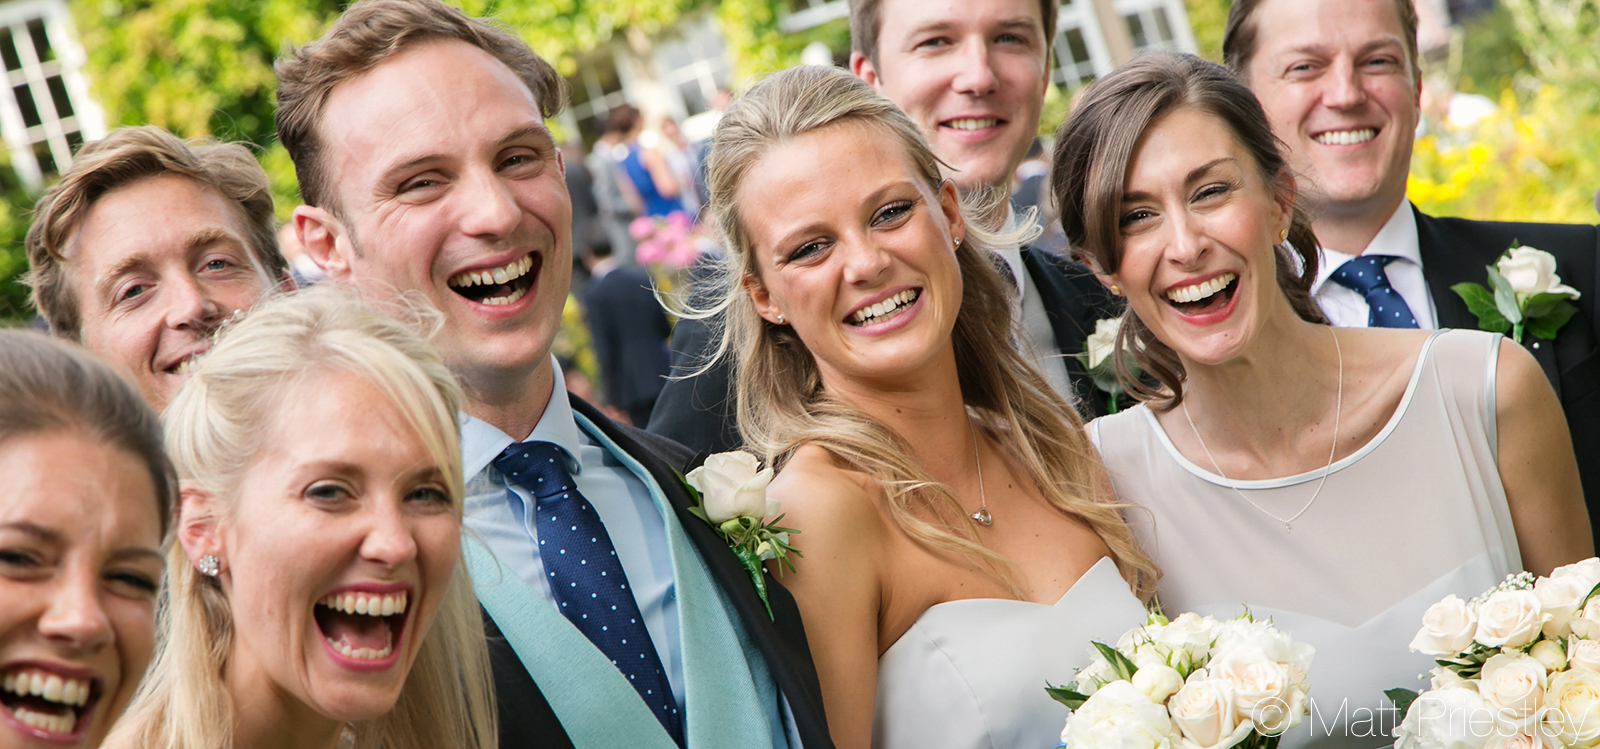 Wedding-Bridal-Party-laughing-in-the-grounds-of-Cheshire-wedding-venue-Hilltop1